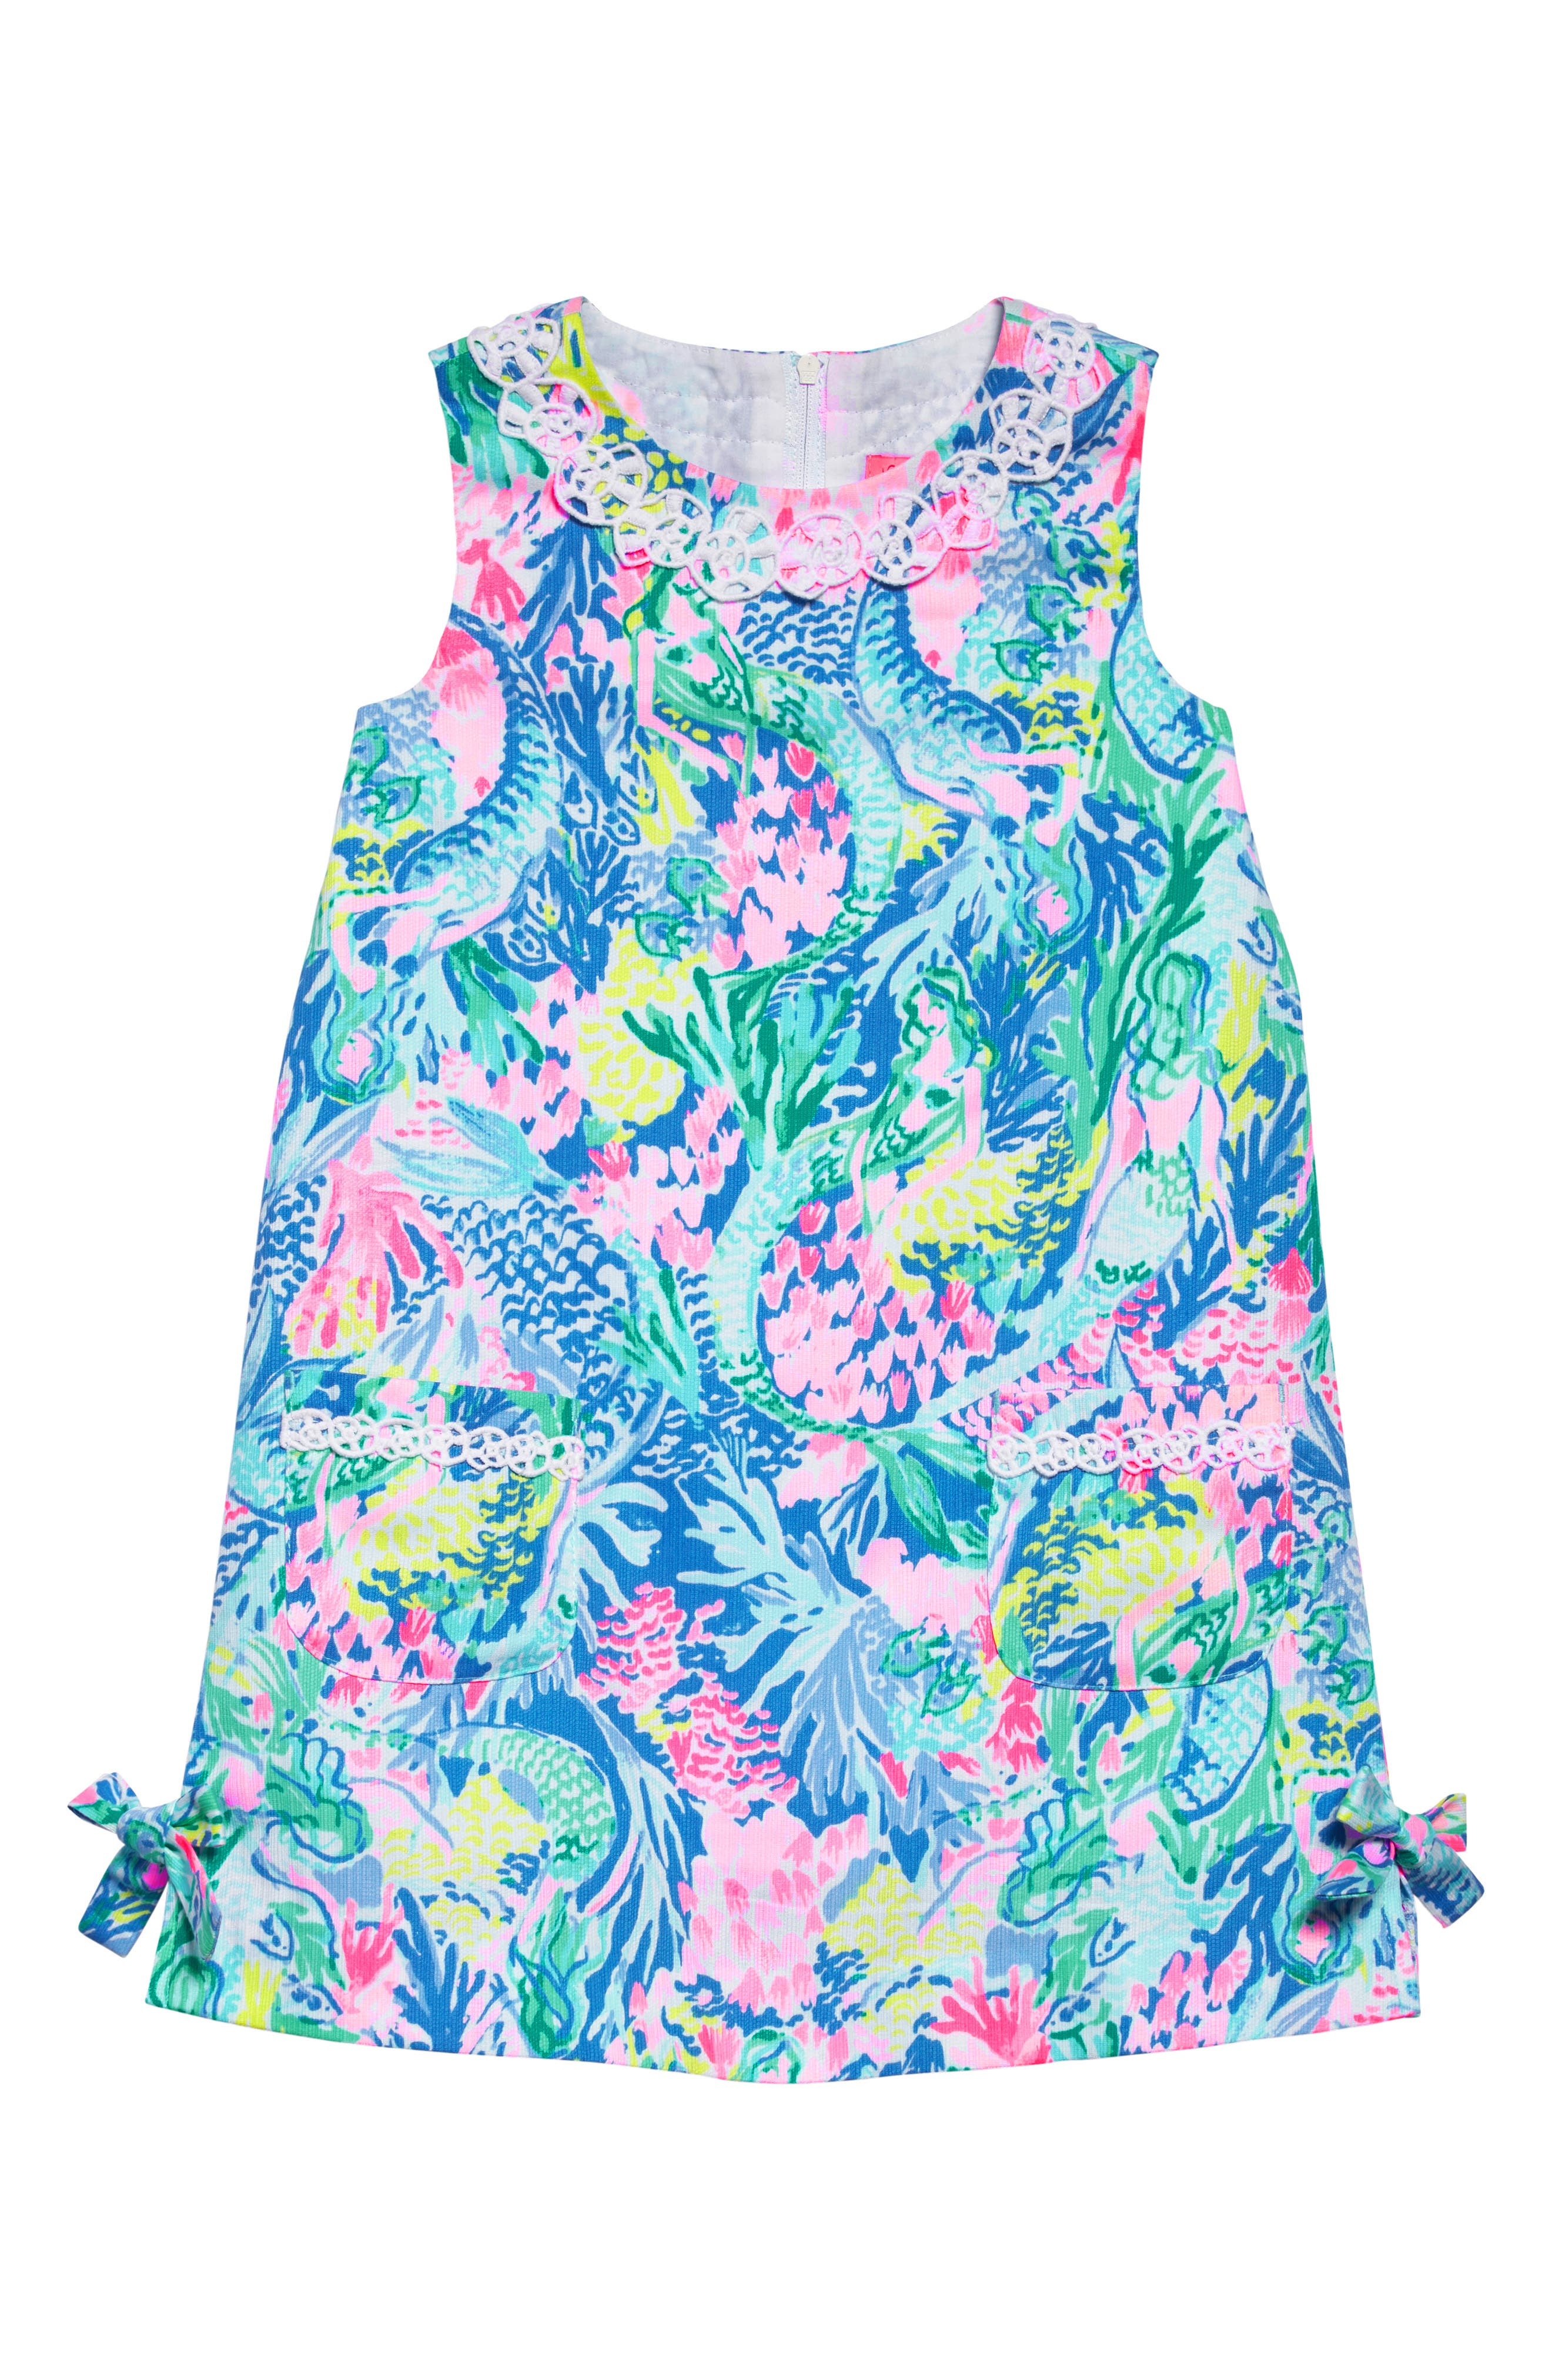 Little Lilly Classic Shift Dress,                             Main thumbnail 1, color,                             409